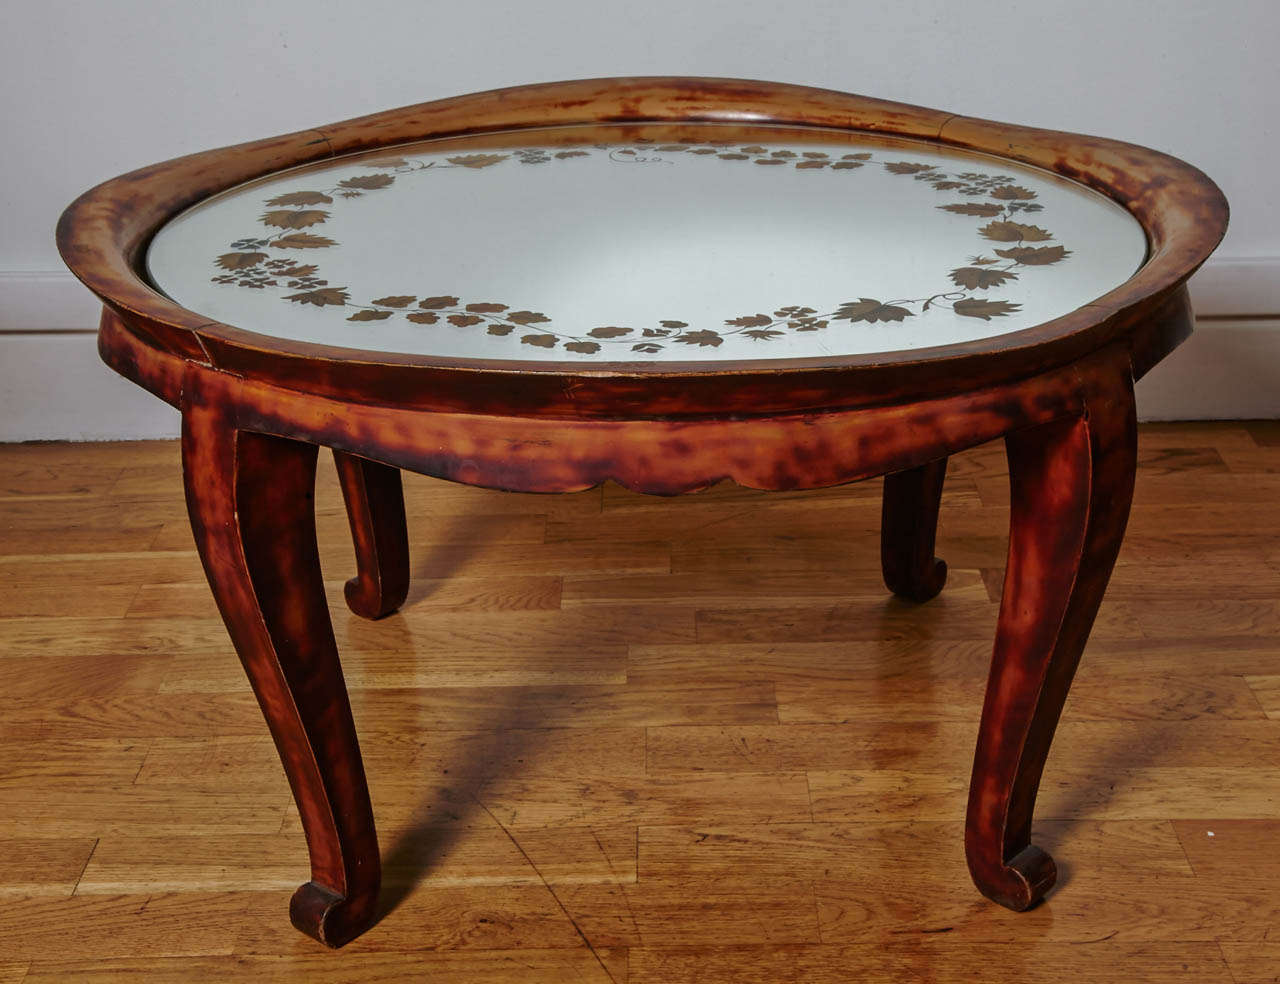 Low Coffee Table Or Guéridon In Irregular Turtle Shell Color Chinese Lacquer Basin Shape